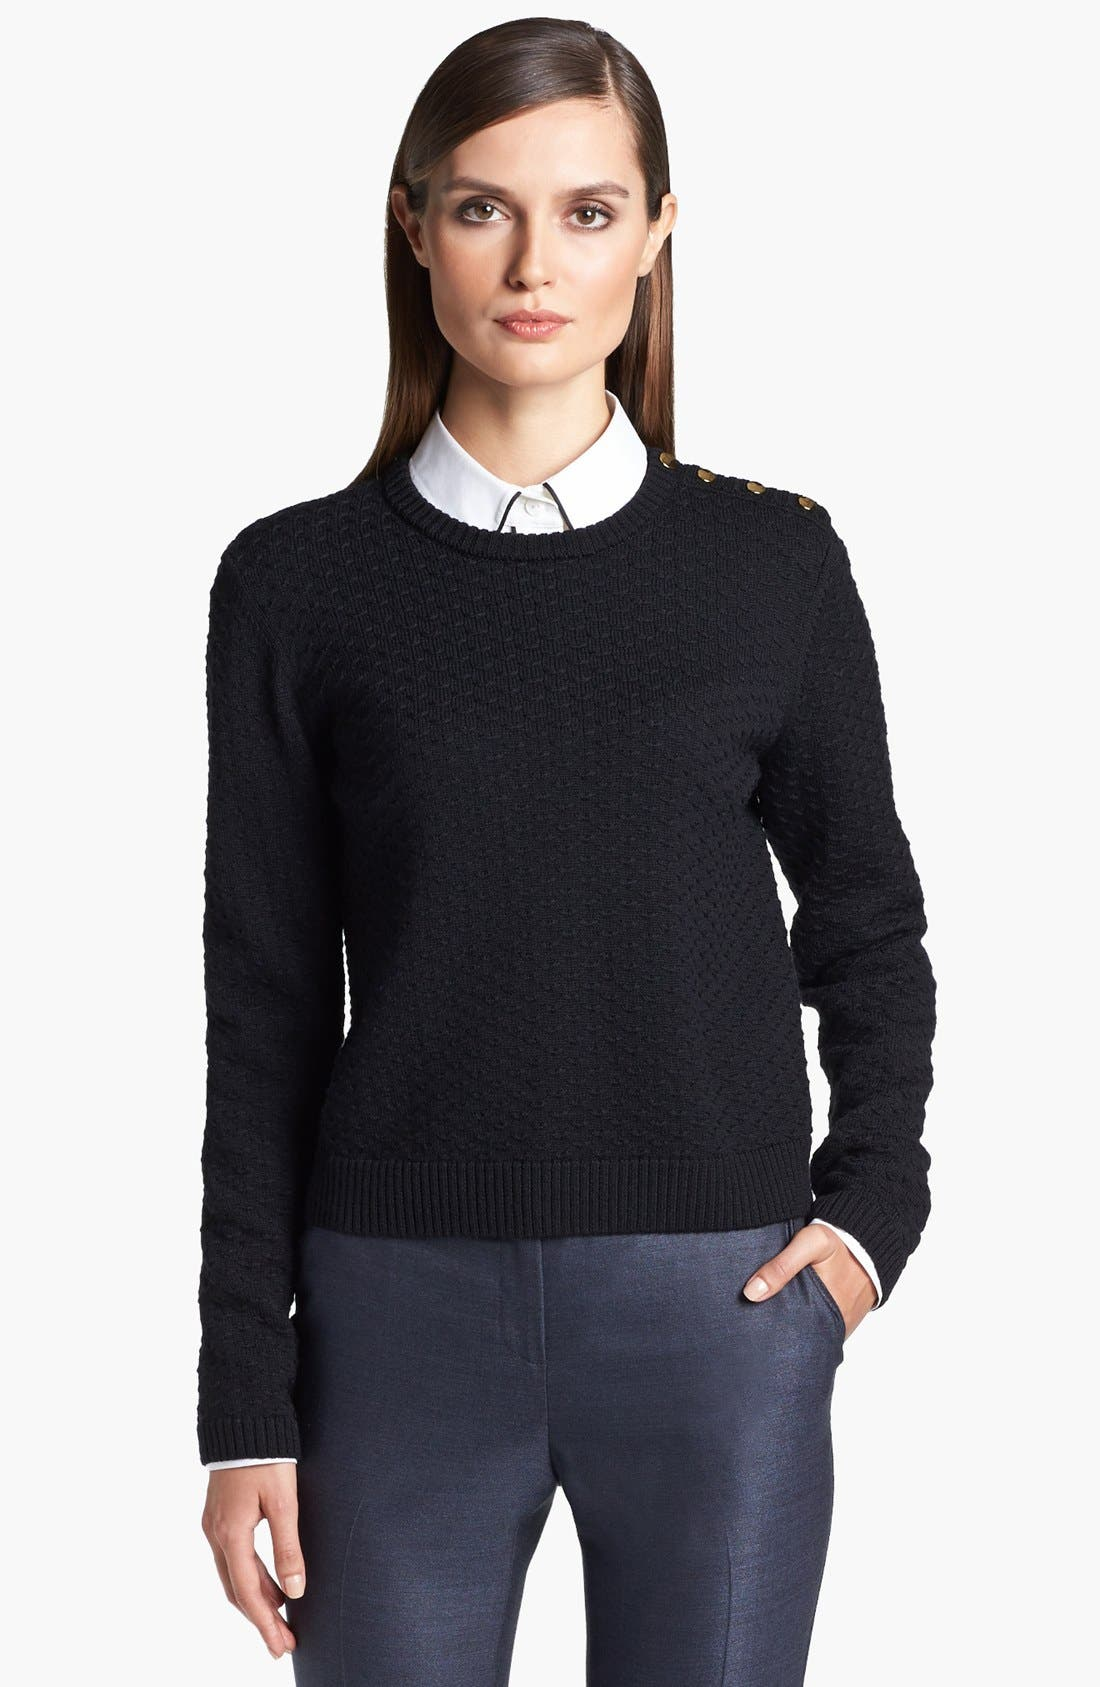 Alternate Image 1 Selected - St. John Yellow Label Shoulder Snap Eyelet Knit Sweater